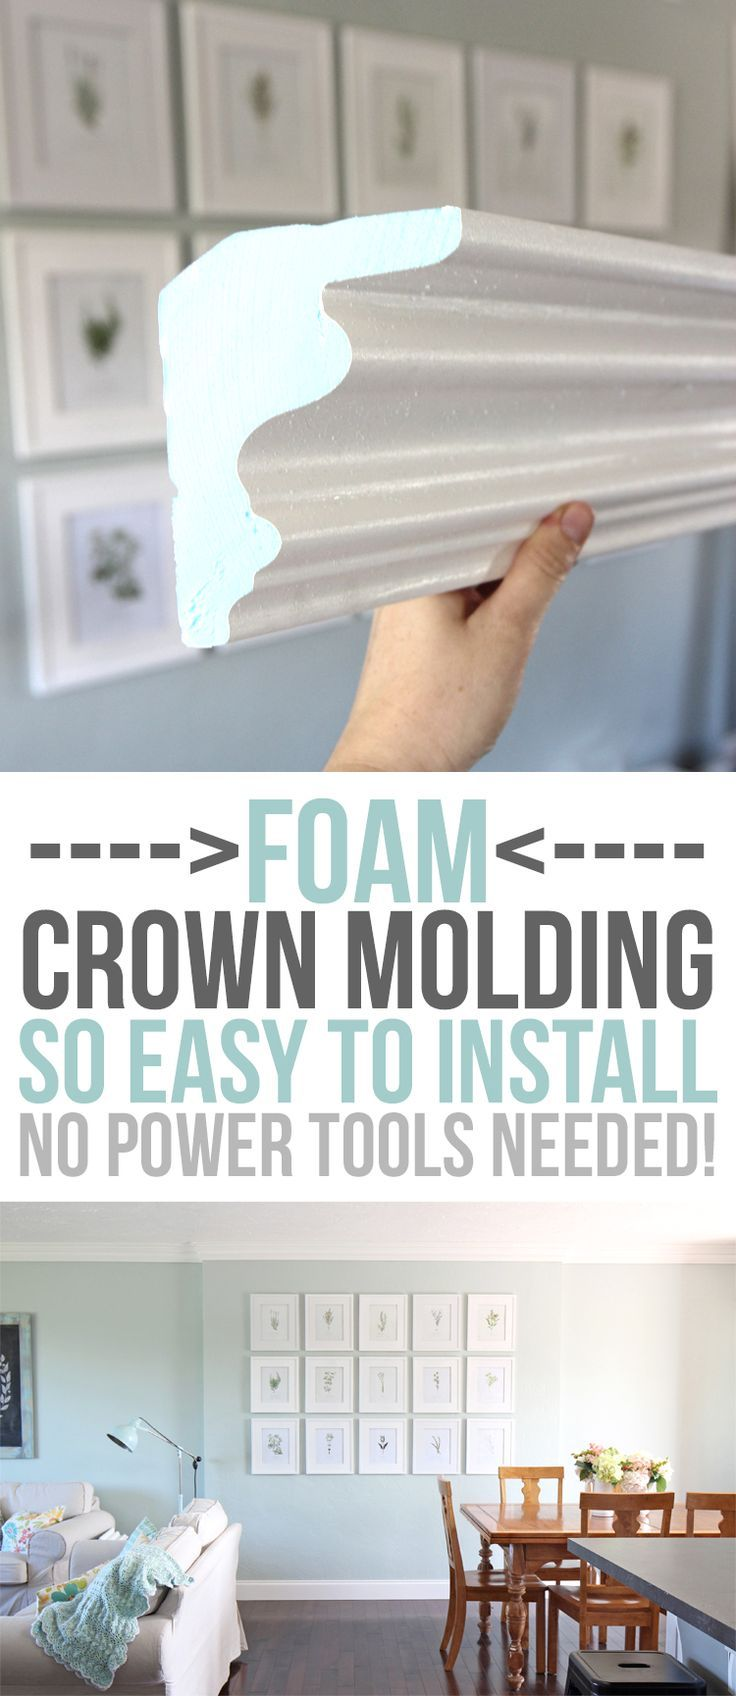 Foam Crown Molding Installation and Product Review is part of  - Foam crown molding is simple to install and looks just like wood molding! Learn everything you need to know about installing foam crown molding from someone who tried it in their own home!